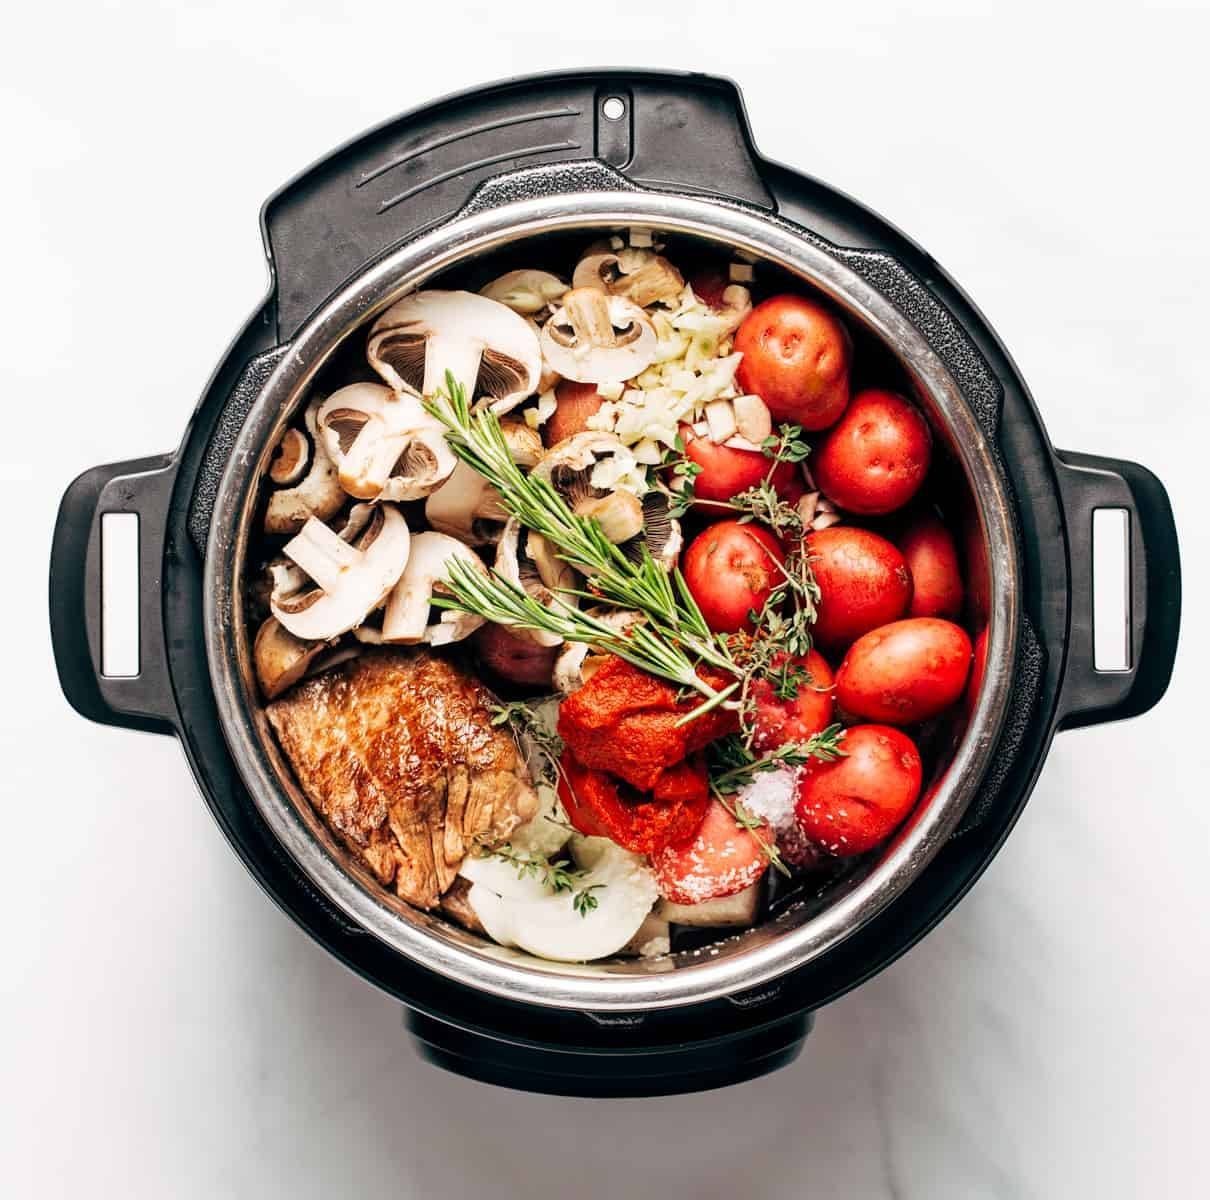 Potatoes, meat, mushrooms, spices, and onions in an instant pot